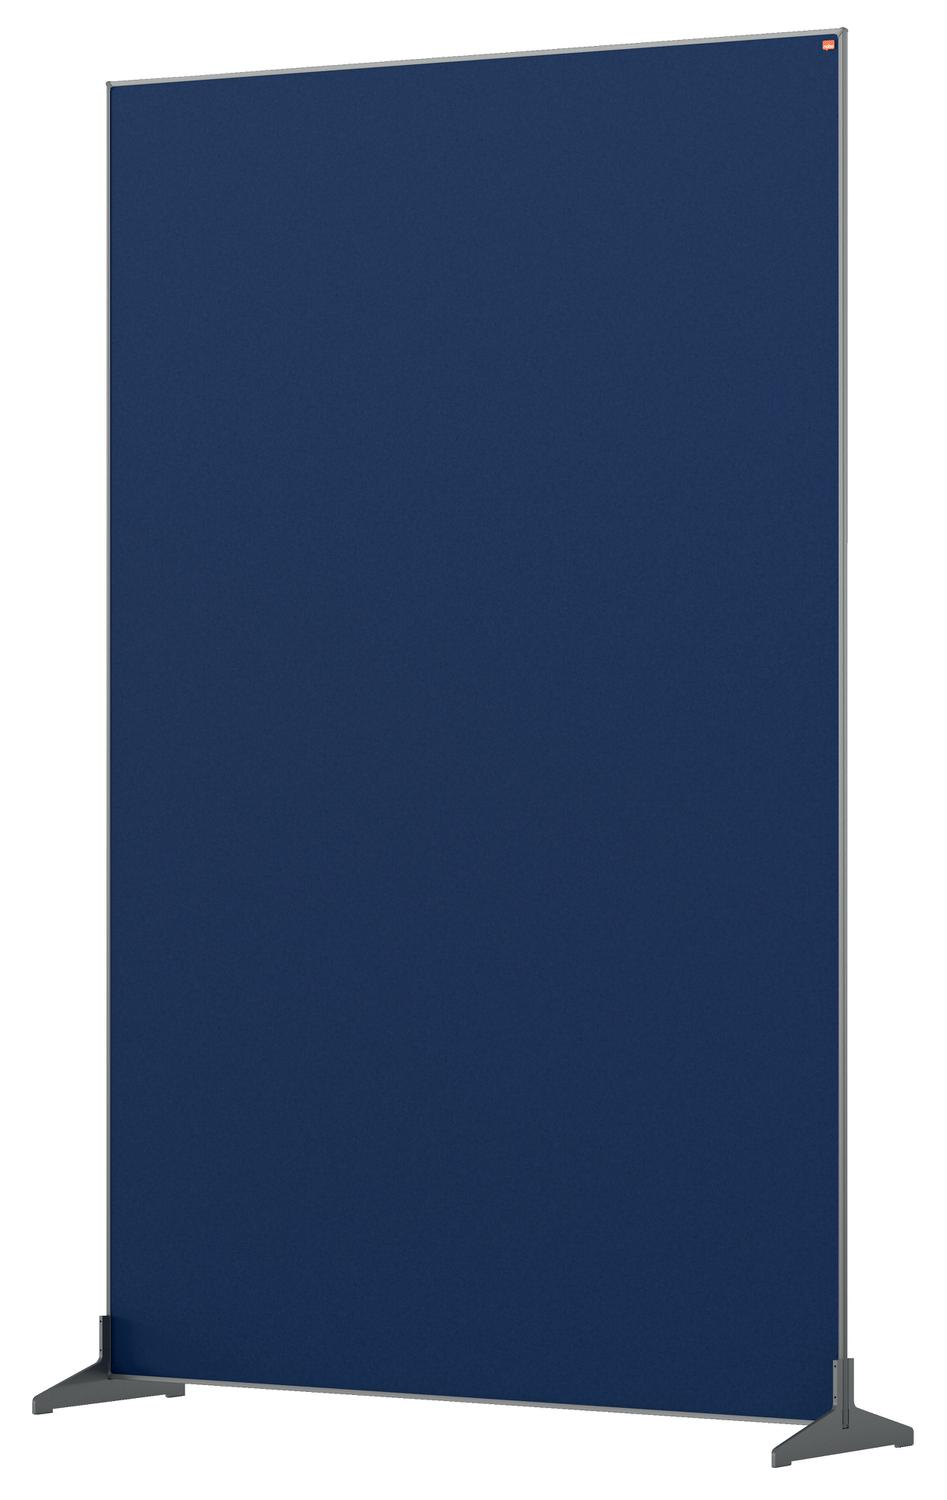 Straight Tops Nobo Impression Pro Floor Divider 1200x1800mm Blue